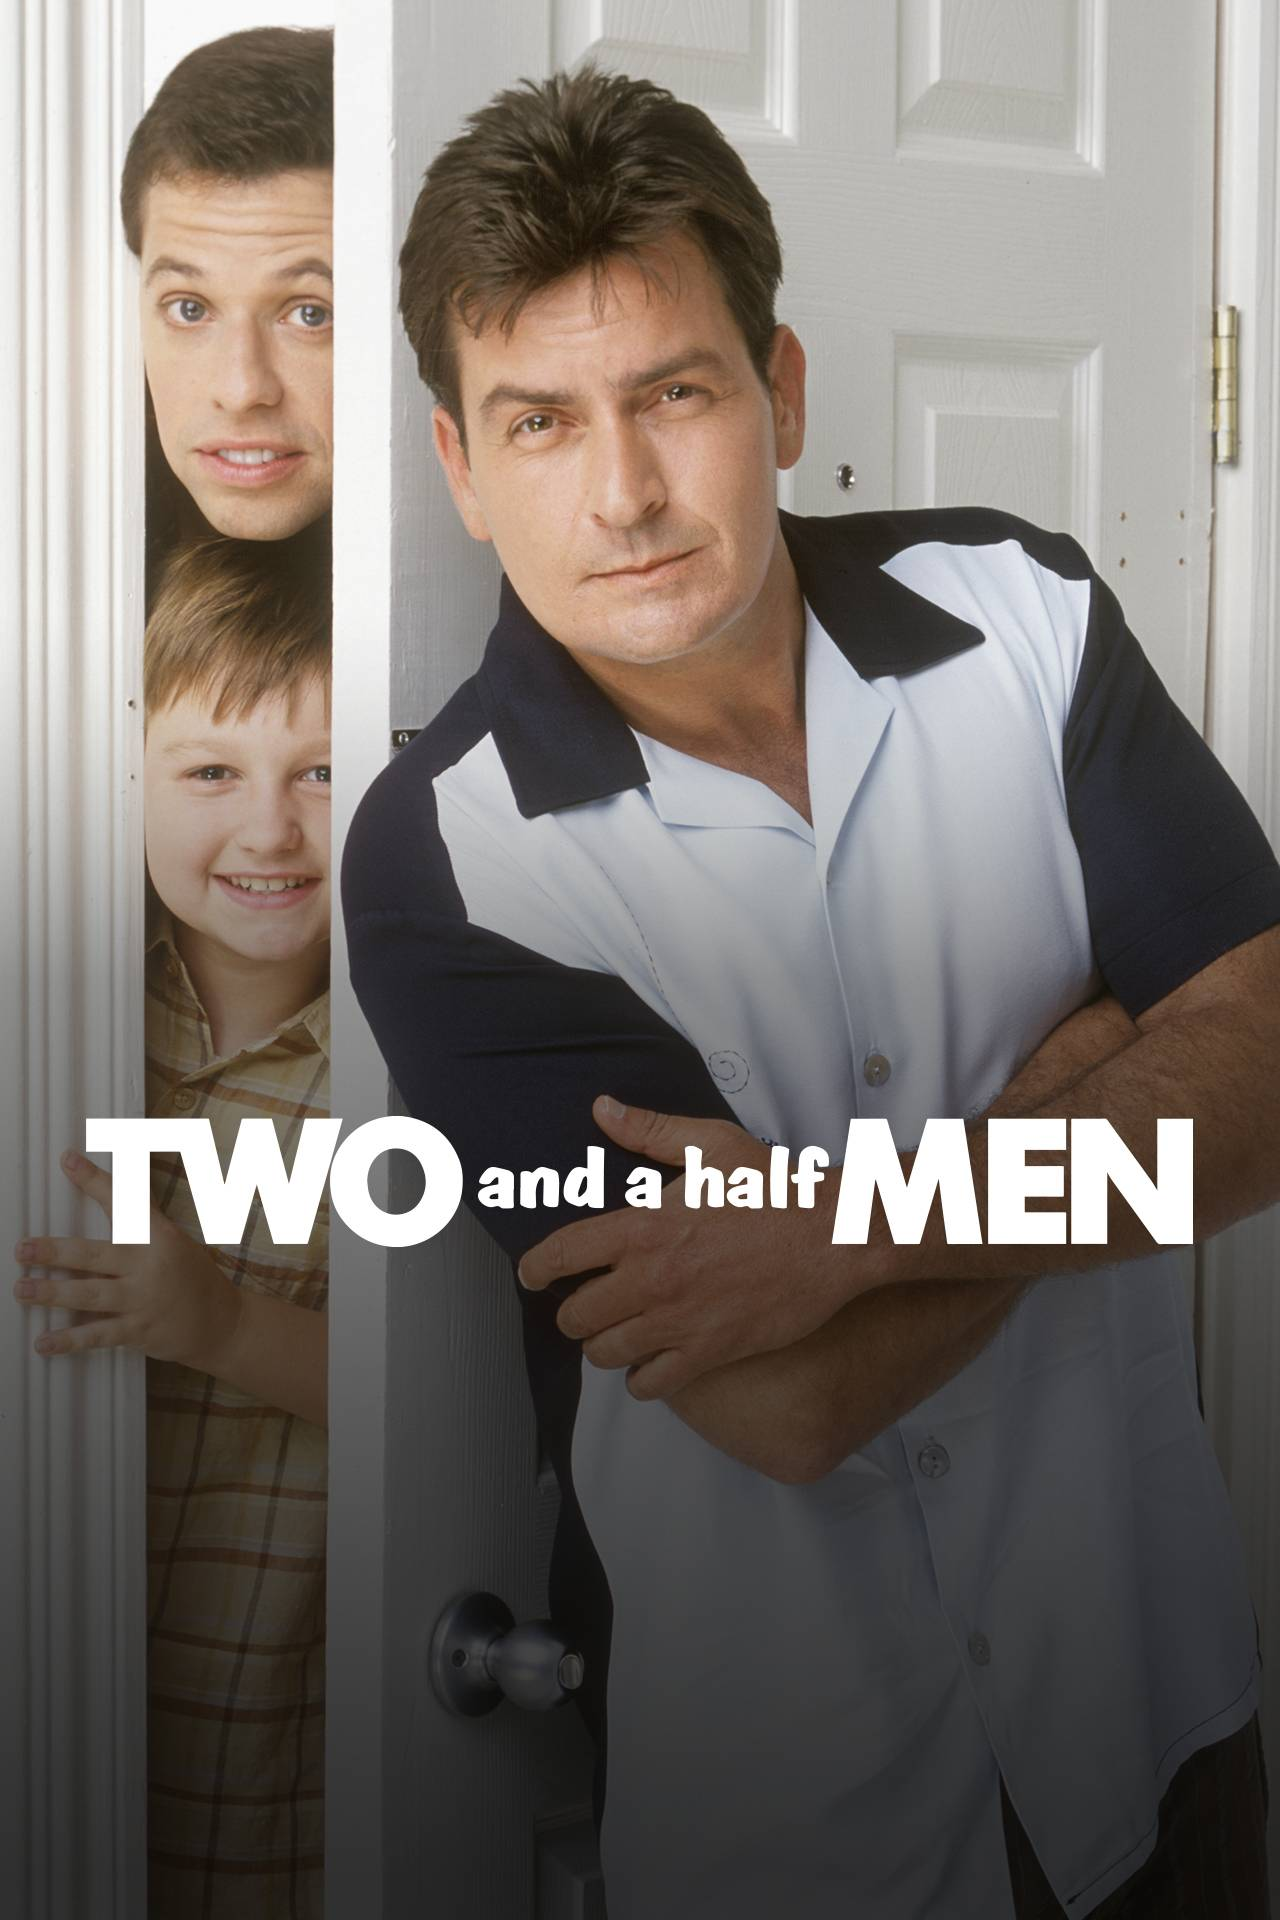 Two and a half men season 1 episode 13 | List of Two and a Half Men